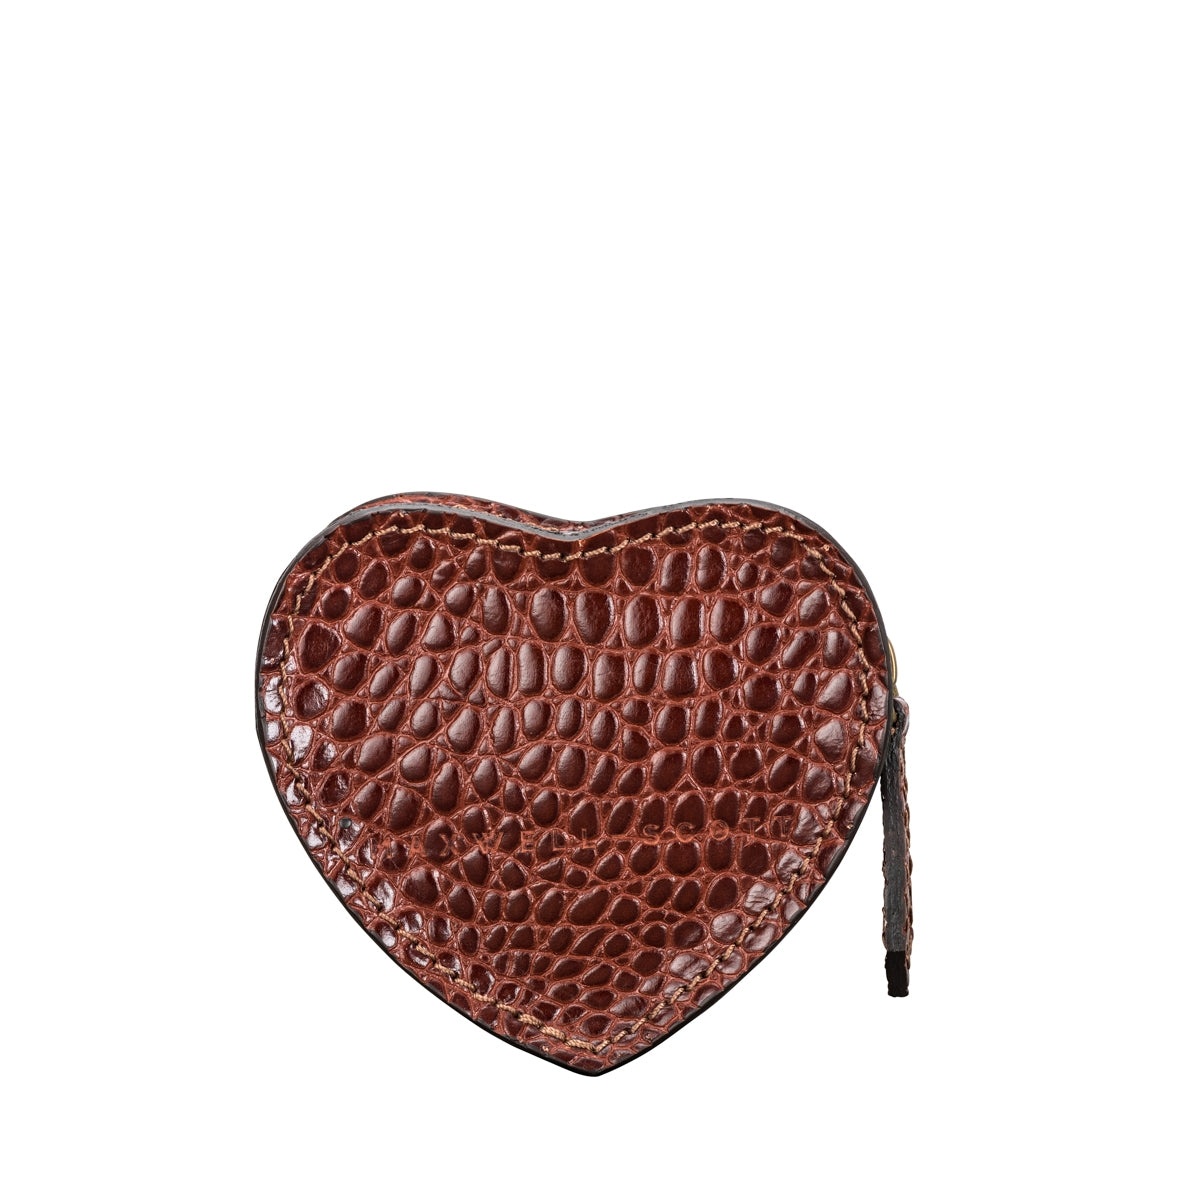 Image 4 of the 'Mirabella' Heart Shaped Croco Leather Coin Purse